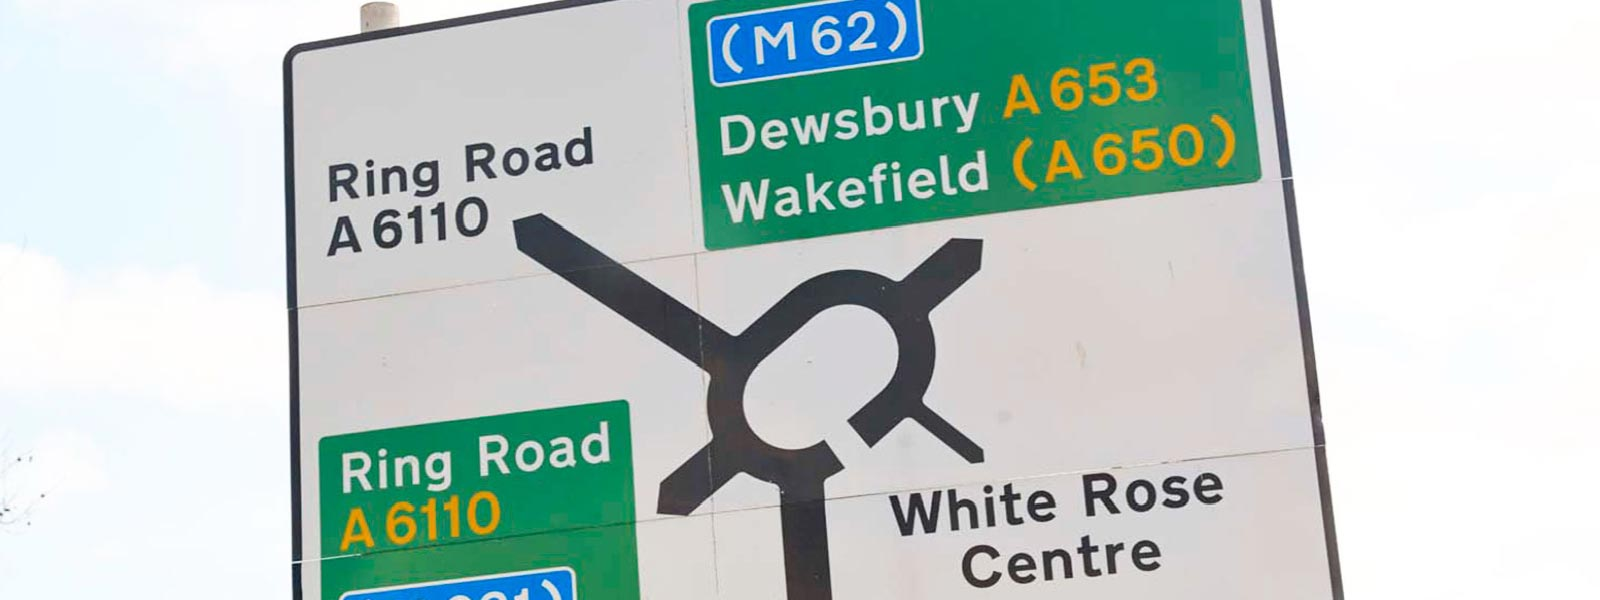 Travel directions Leeds